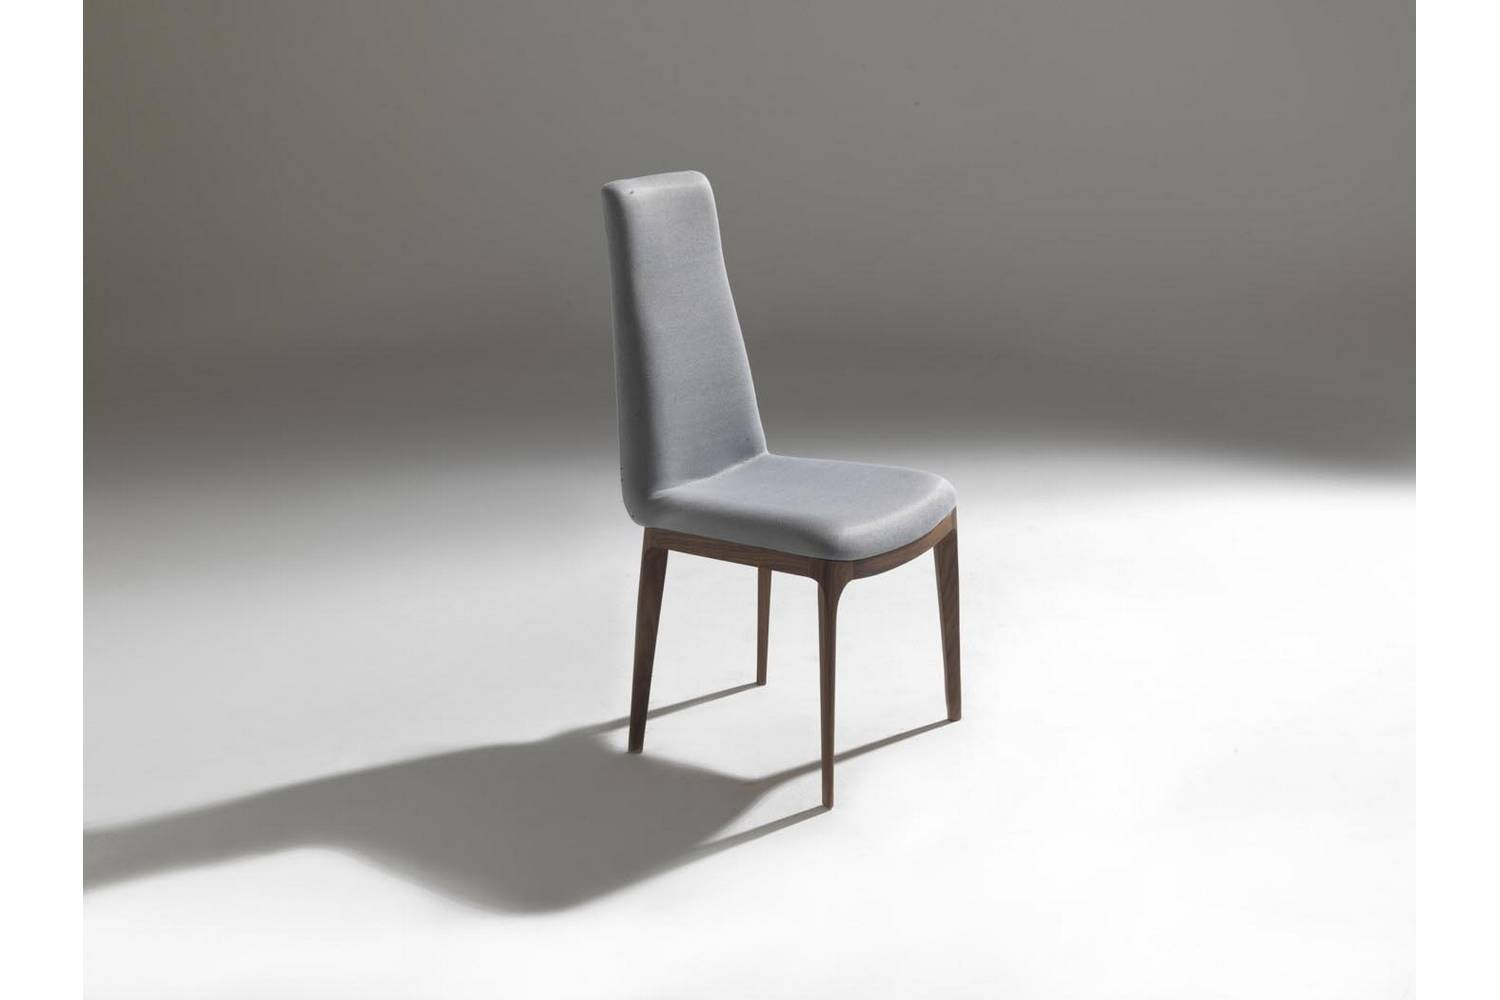 Eva Chair by P. Salvade for Porada